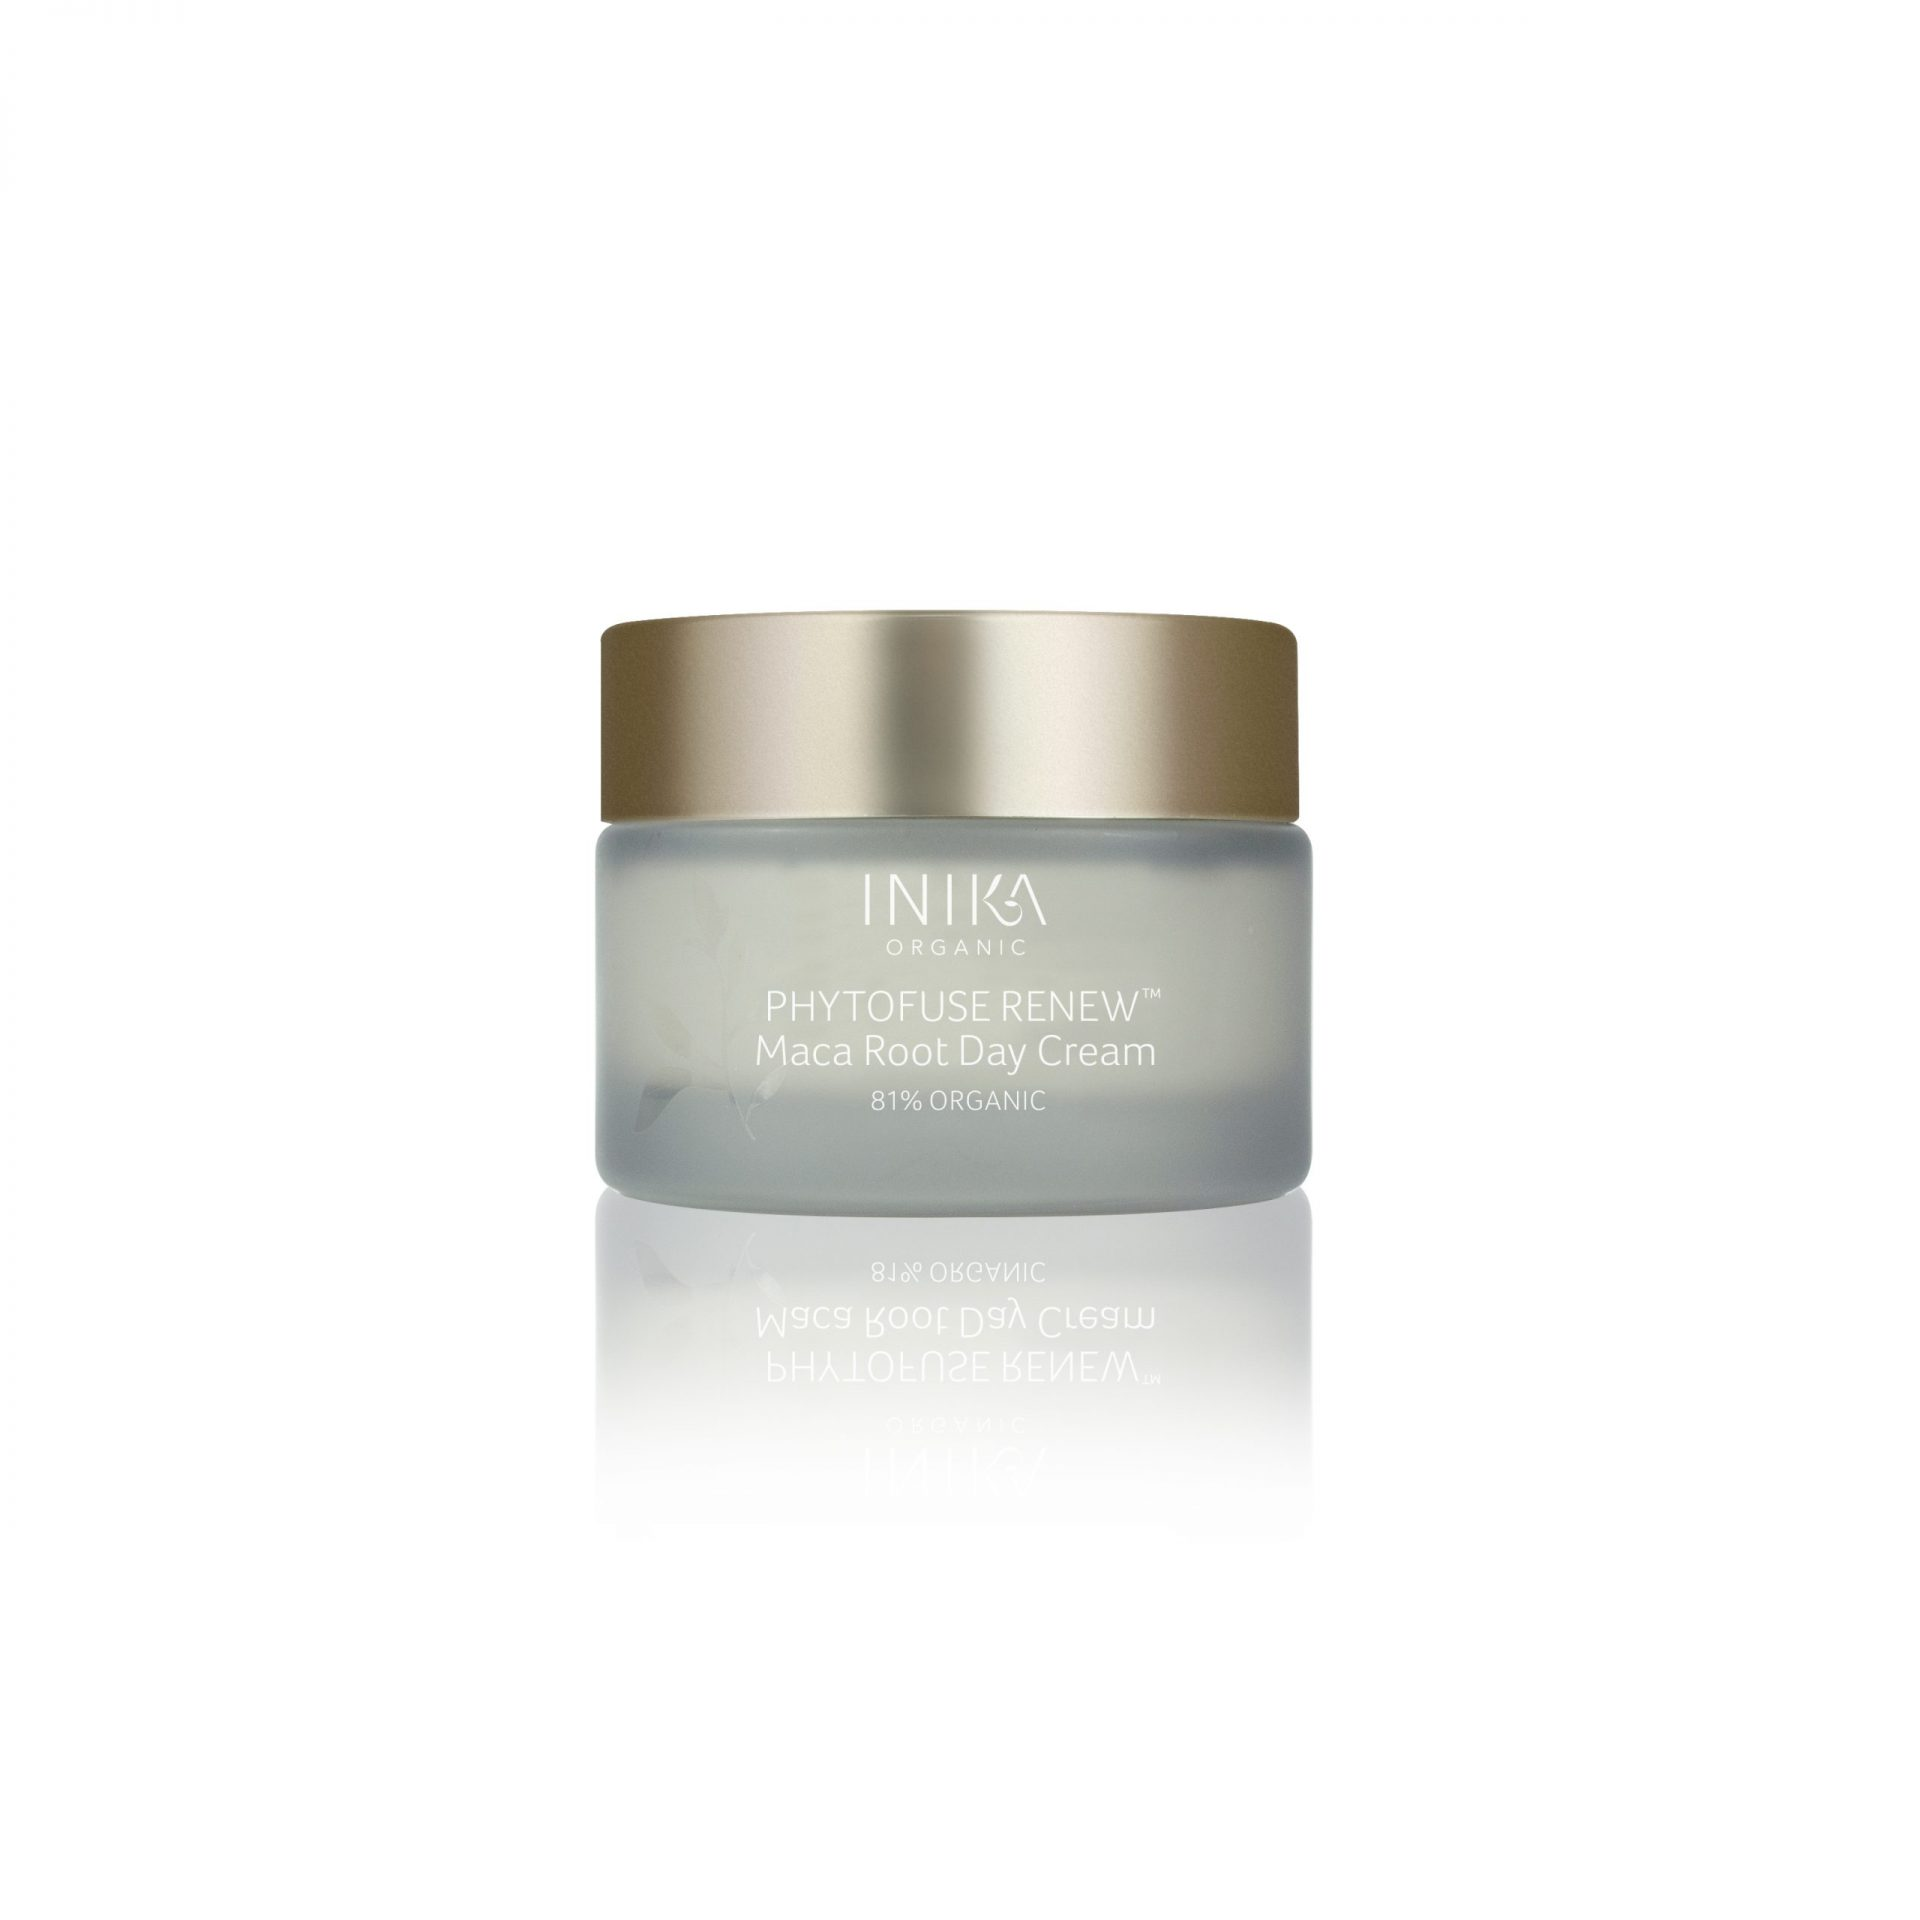 INIKA Phytofuse Renew Maca Root Day Cream